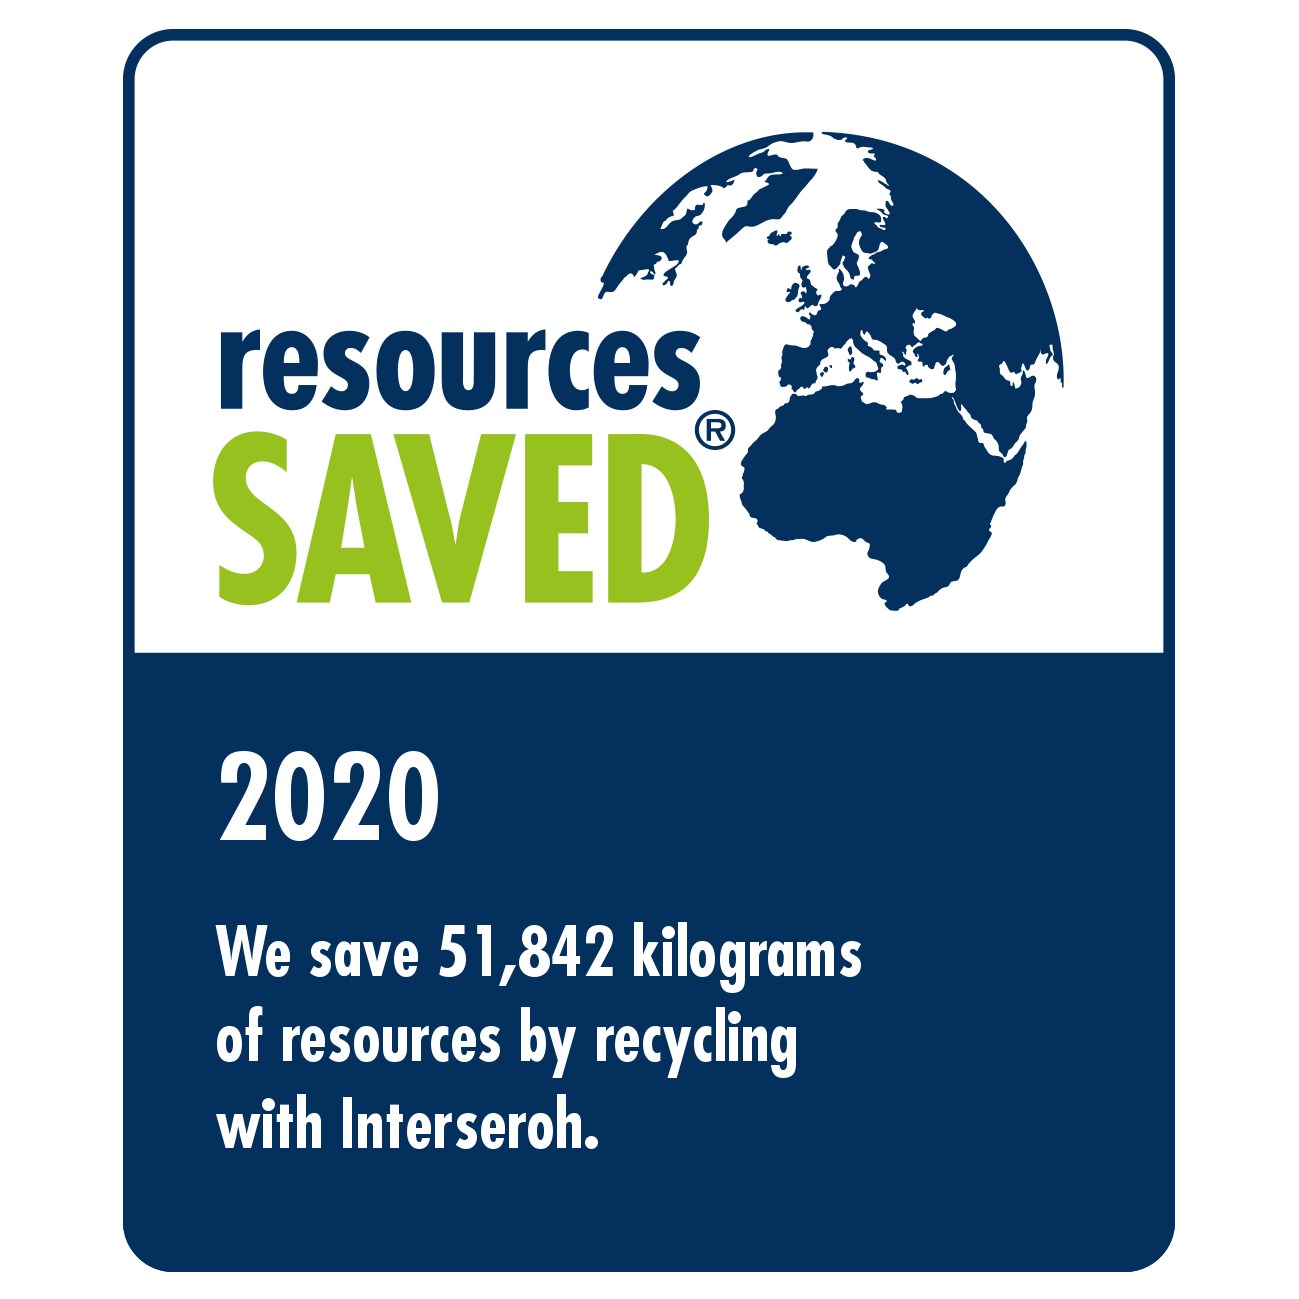 2020 - Saved resources by recycling